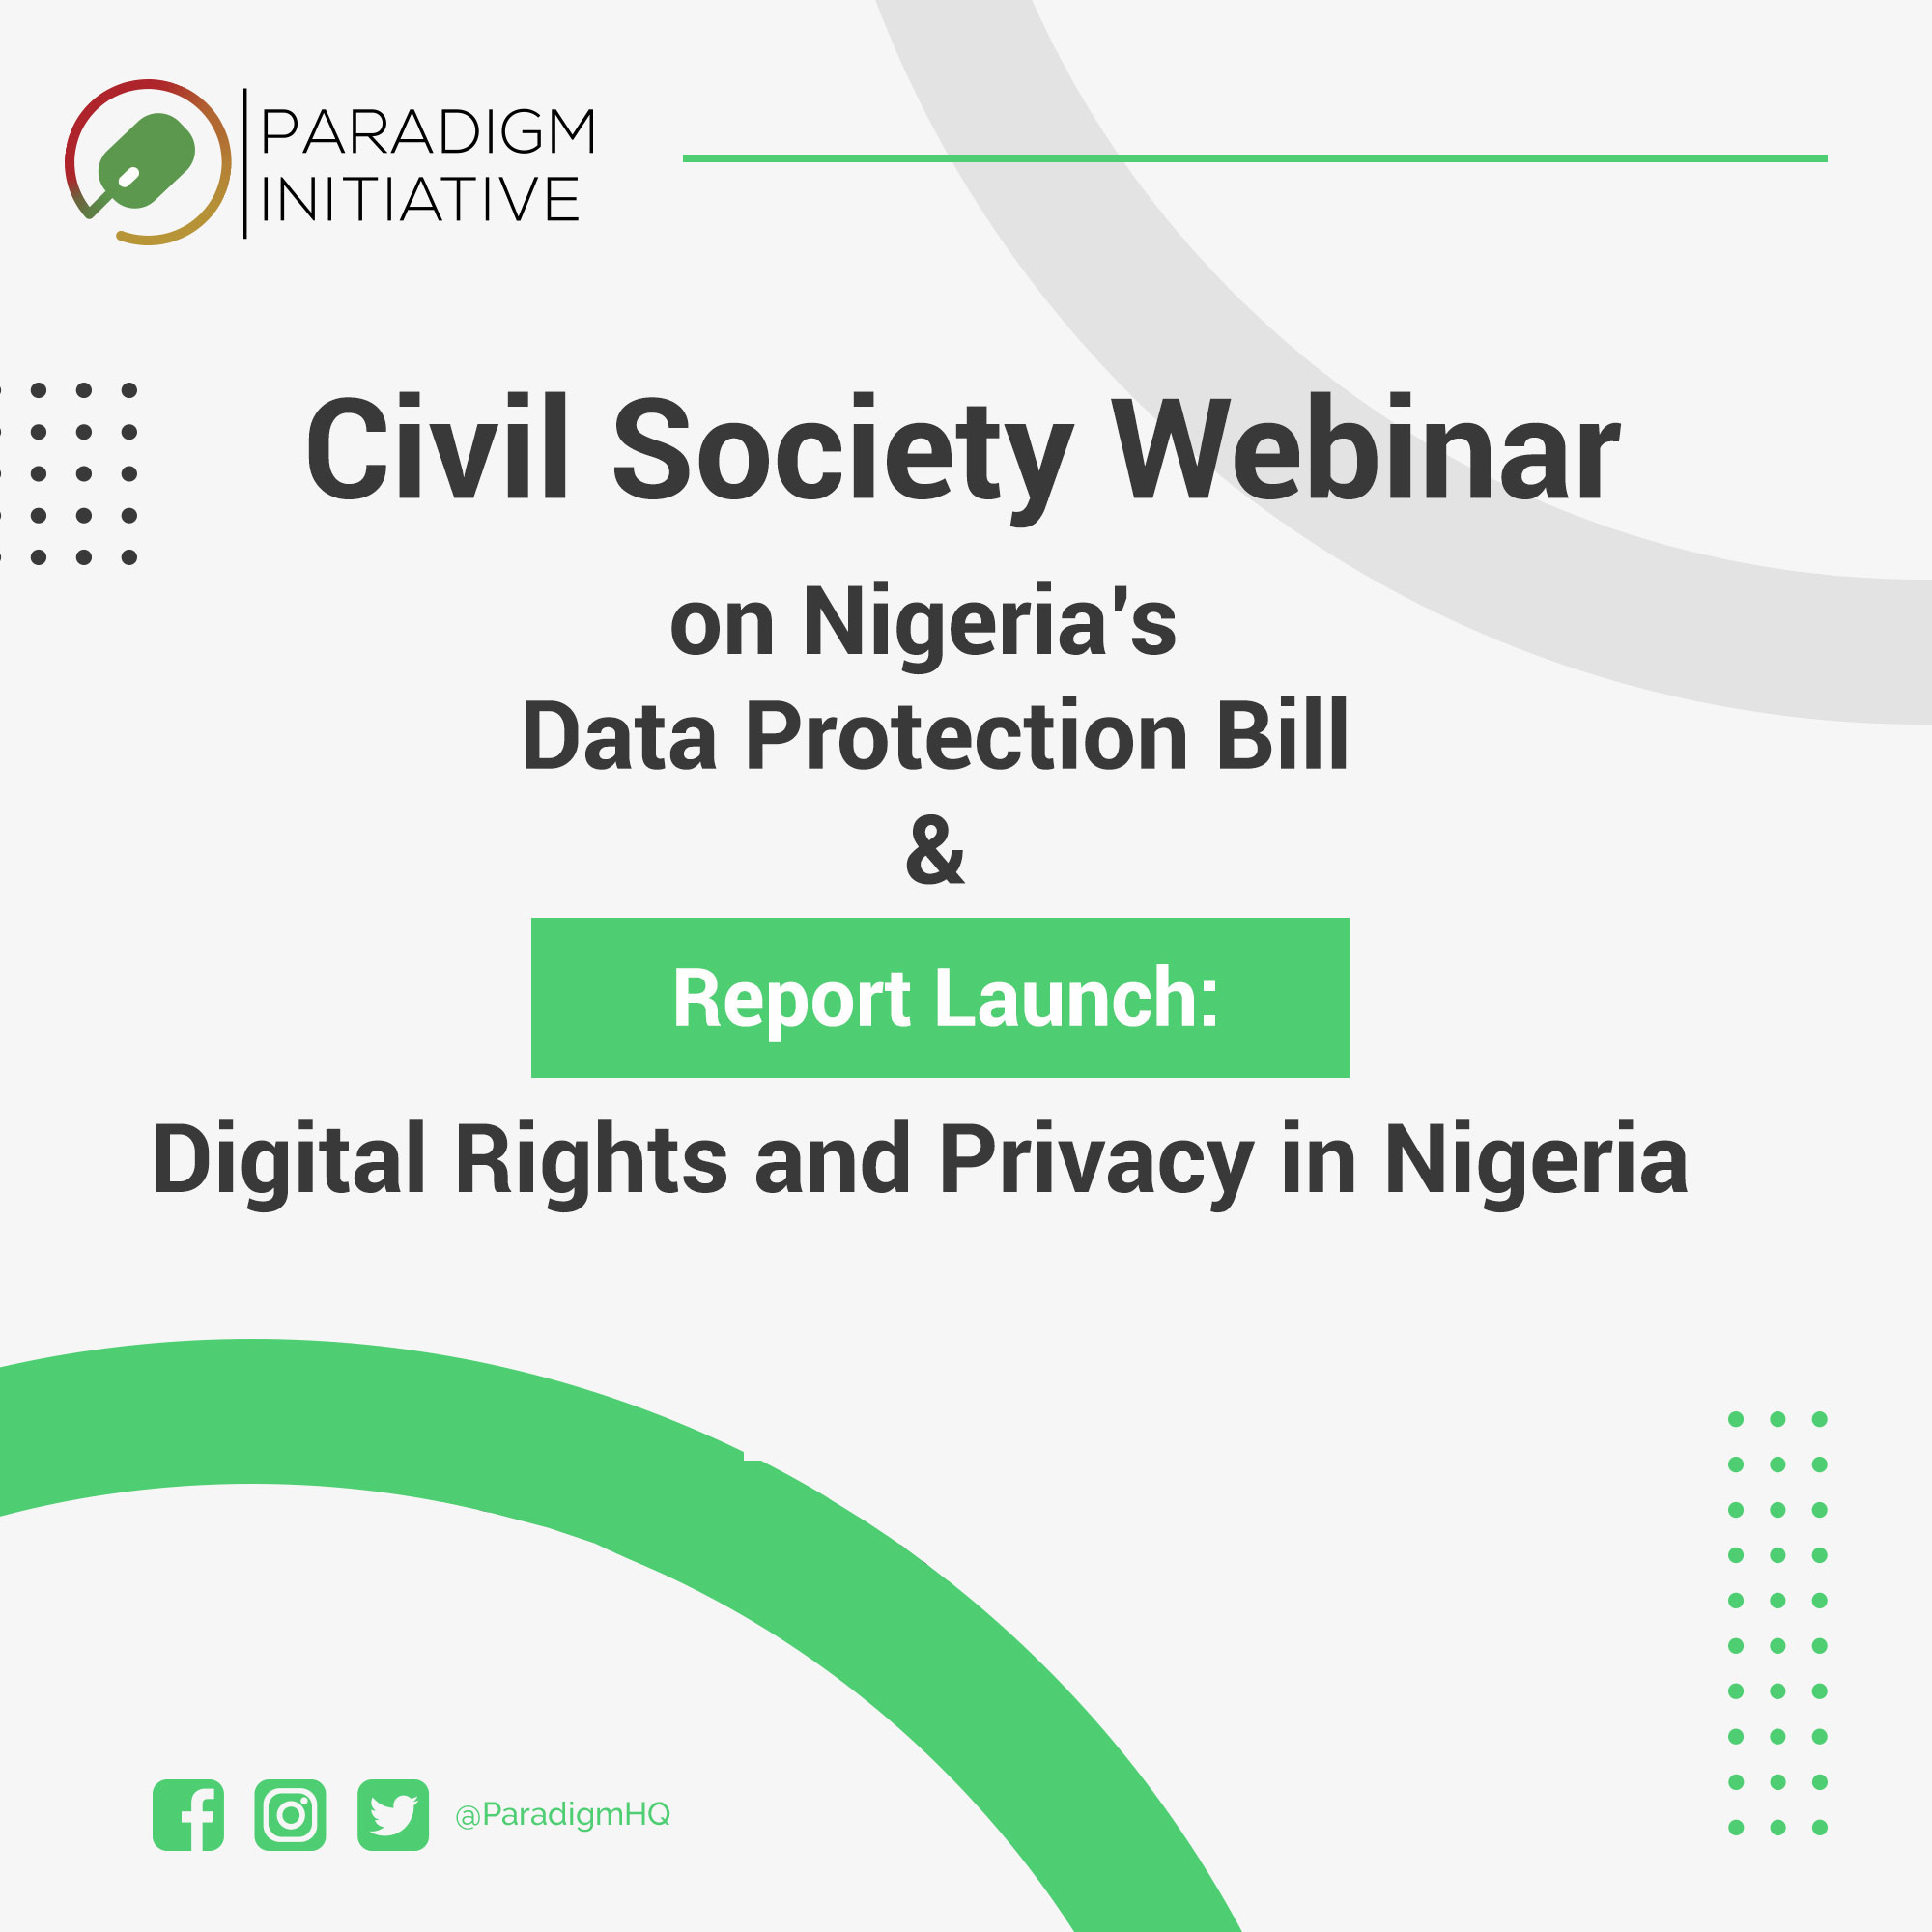 PIN Hosts Webinar on Draft Bill on Data Protection, Launches Report on Digital Rights in Nigeria